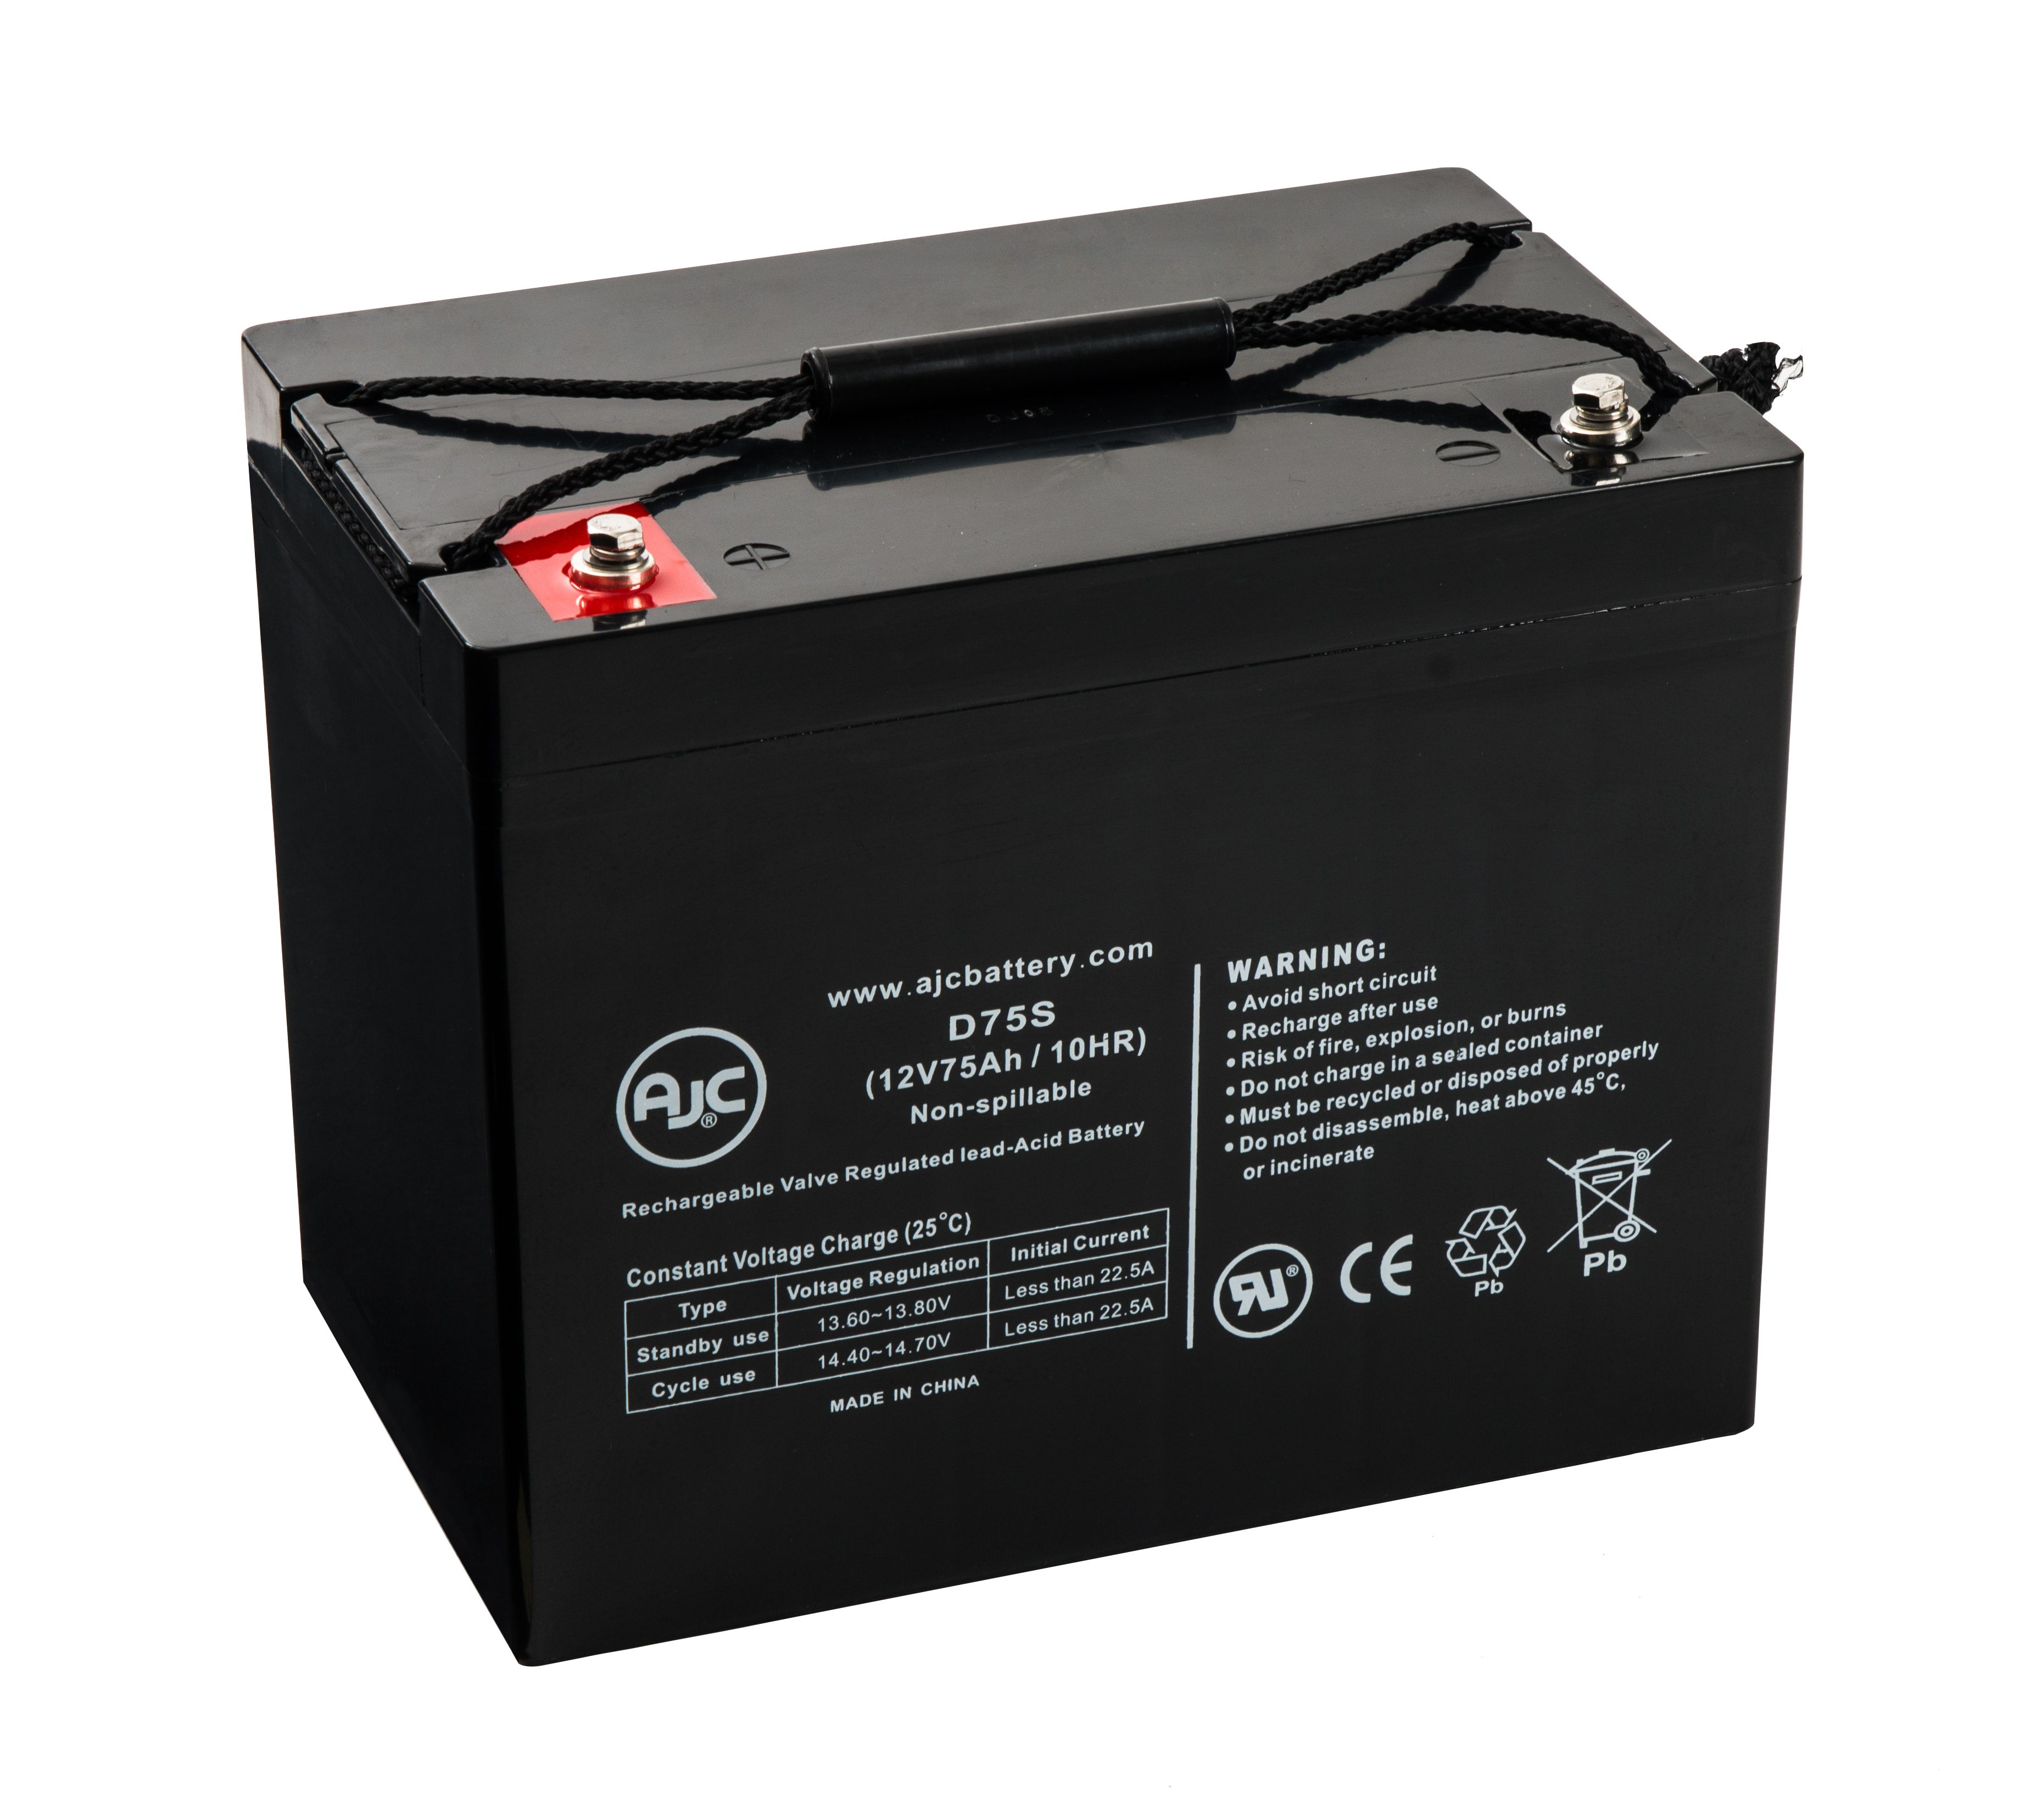 APC Smart-UPS UXBP24 12V 75Ah UPS Battery This is an AJC Brand Replacement by AJC Battery